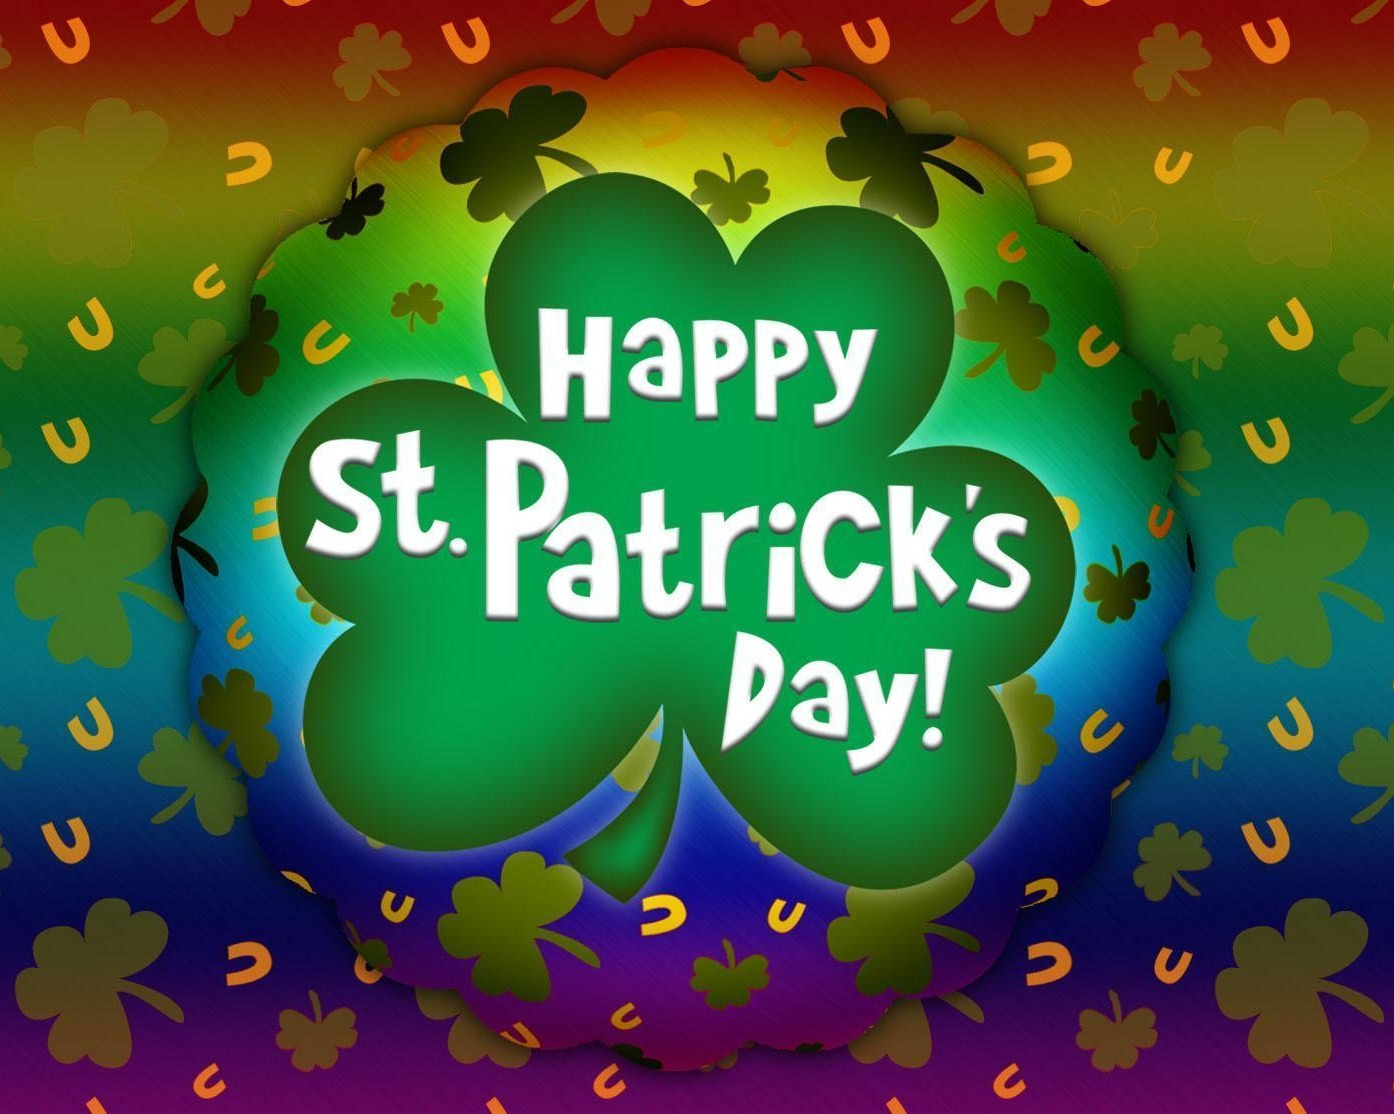 http://4.bp.blogspot.com/-0dkNS7MPlvM/T5Og3UXpgWI/AAAAAAAAIew/EV8UyOZ9-zs/s1600/st_patricks_day_wallpaper_wishes_greetings_northern_ireland_christian_religion_festival_jesus(www.picturespool.blogspot.com)_03.jpg